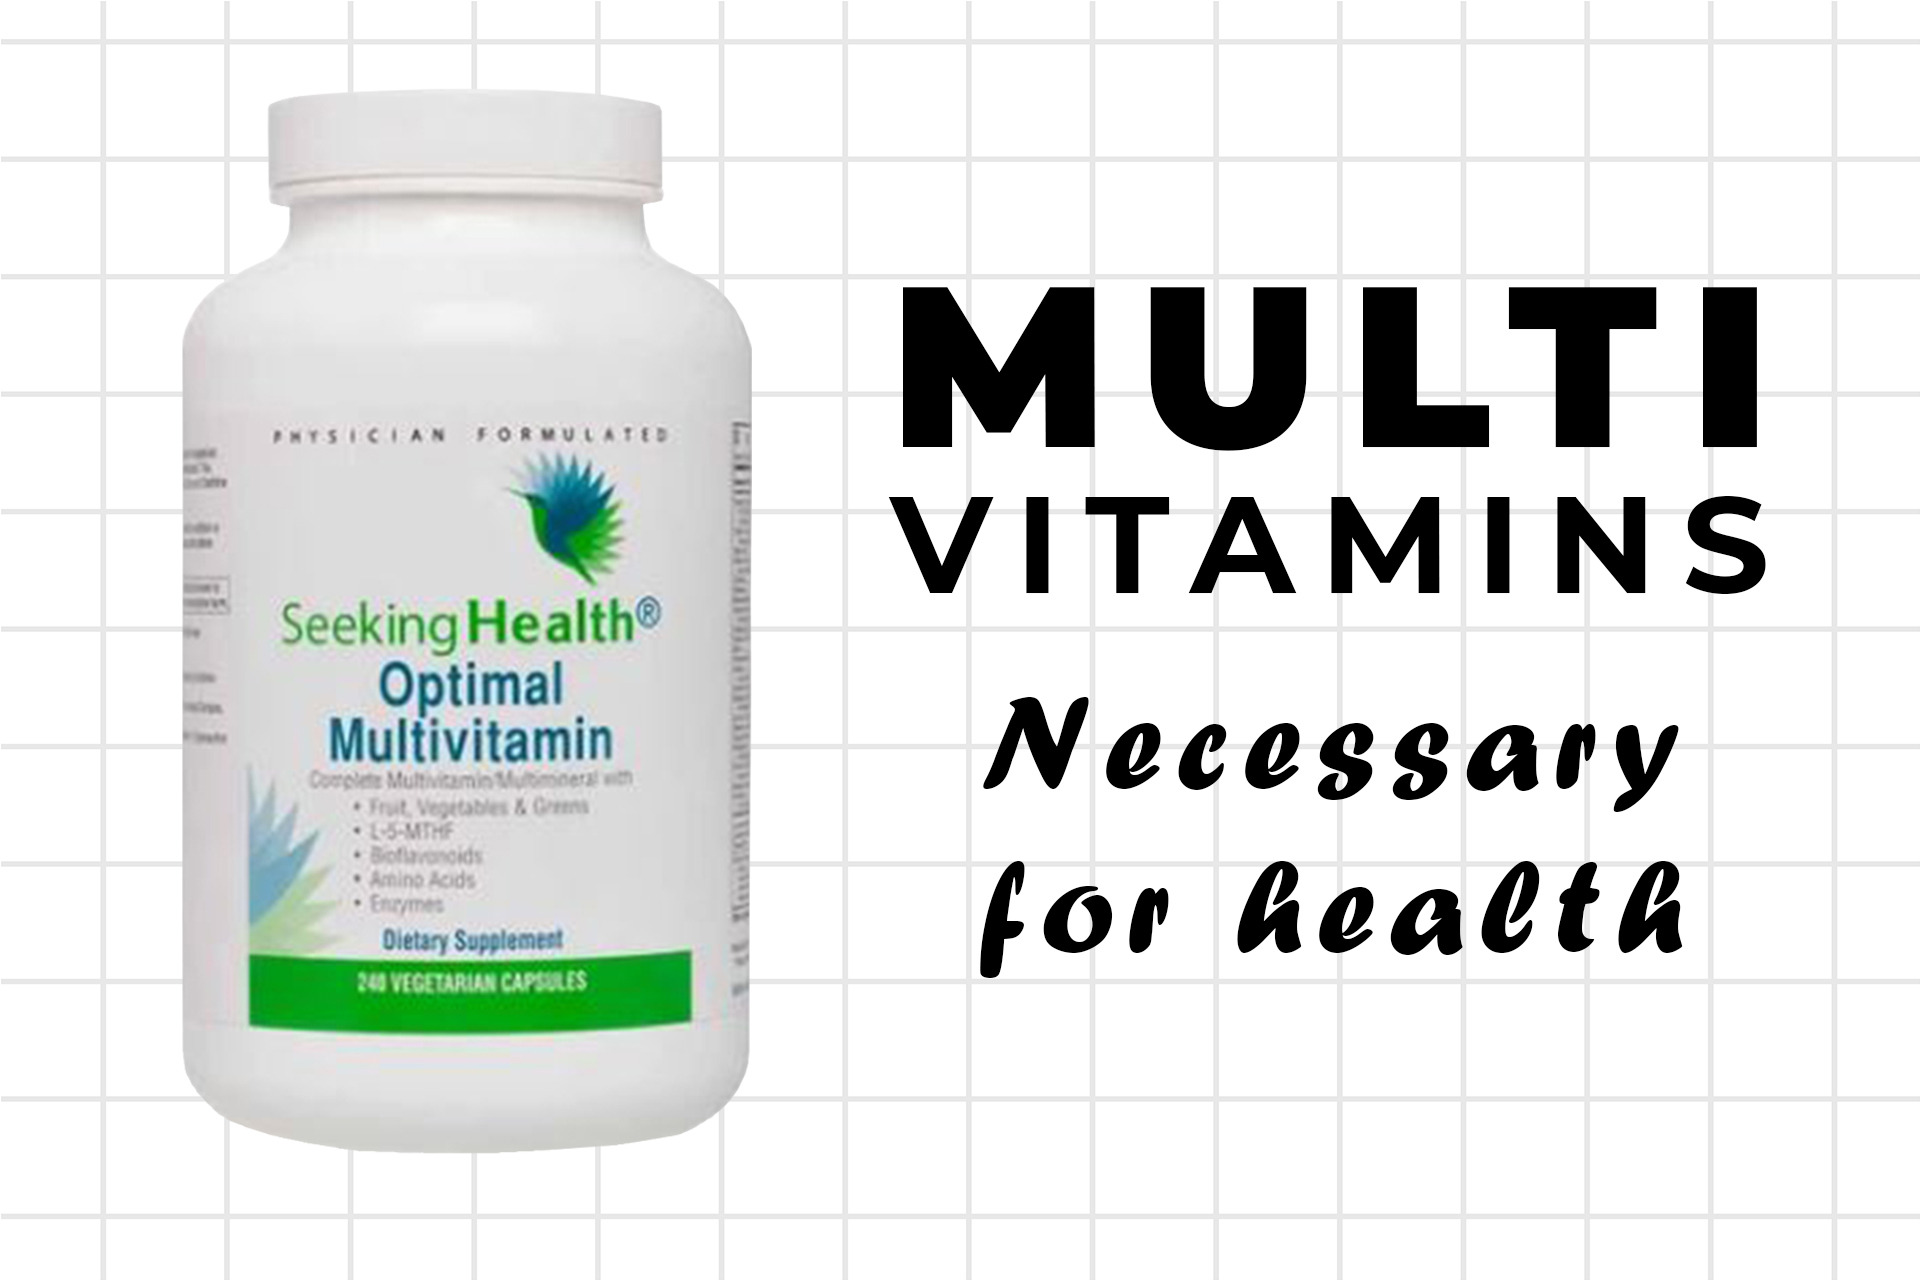 Multivitamin supplements are a must for health